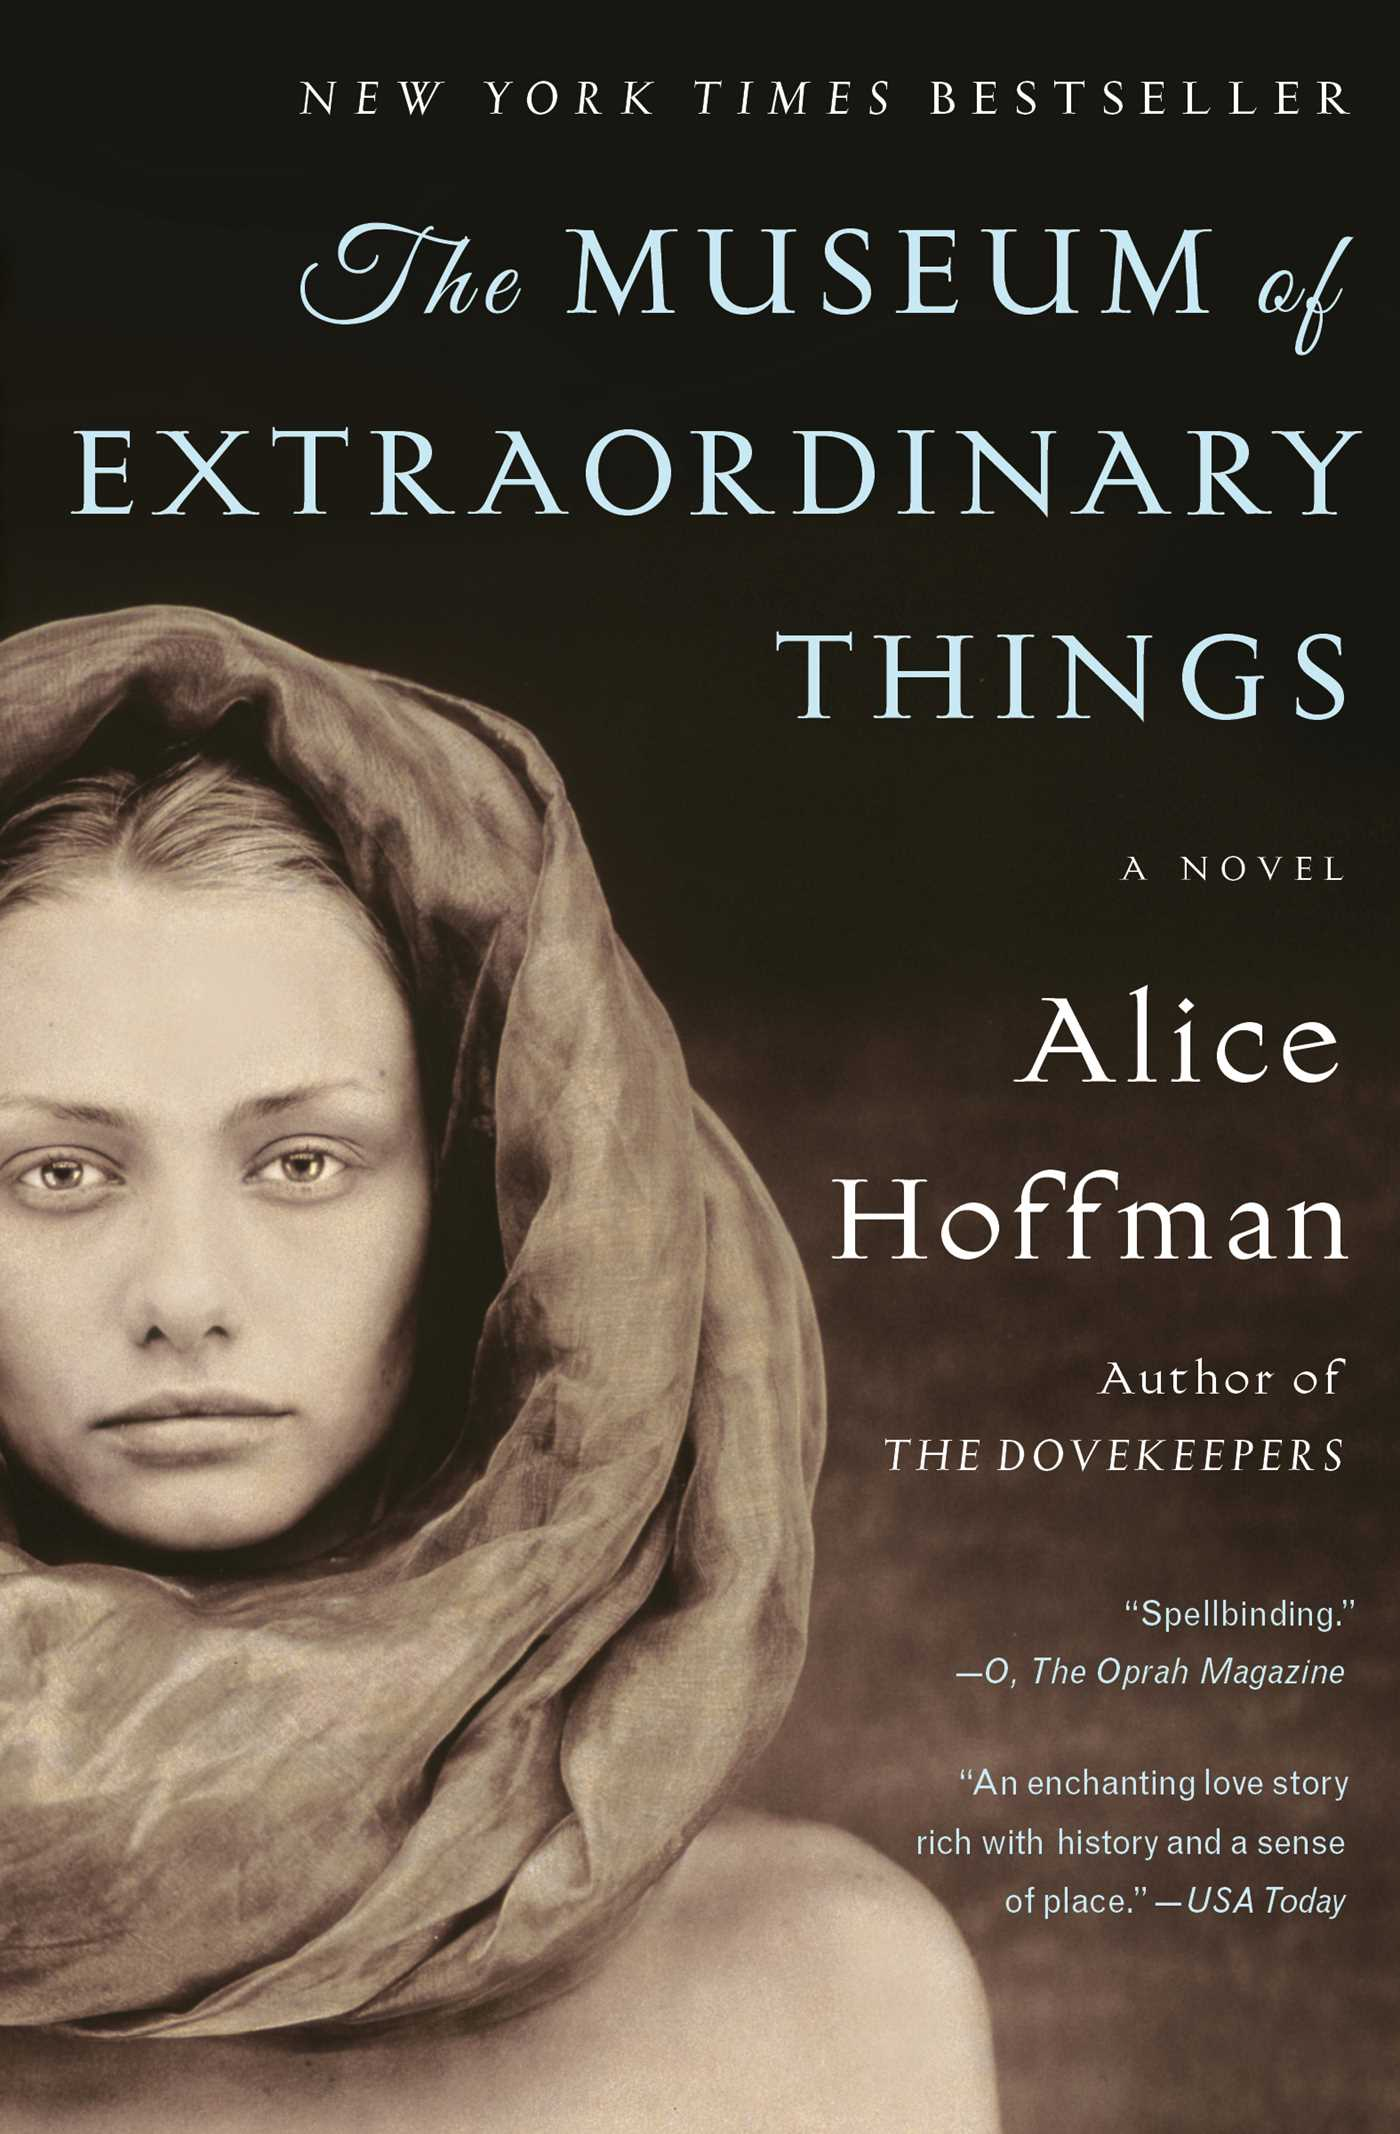 Image result for the museum of extraordinary things book cover